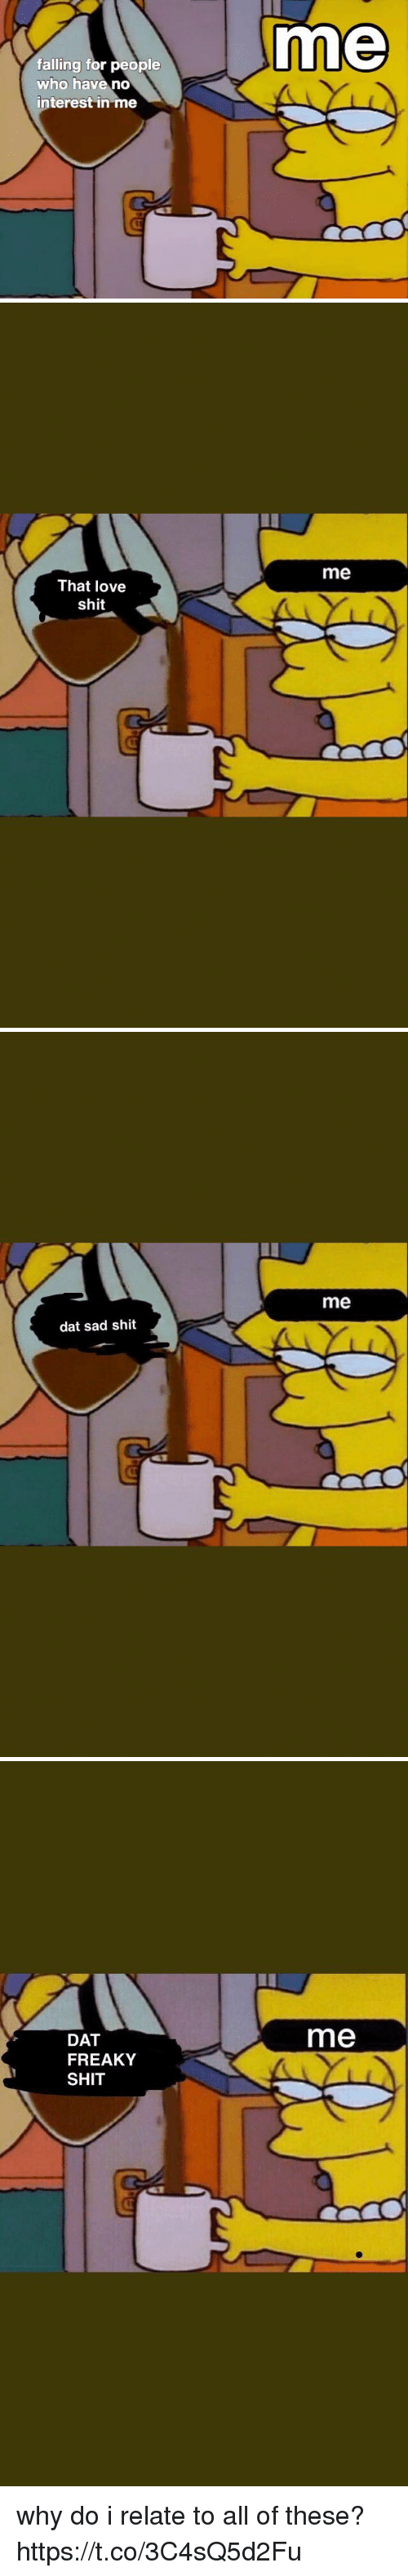 Funny, Love, and Shit: me  falling for people  who have no  interest in me   me  That love  shit   me  dat sad shit   DAT  me  FREAKY  SHIT why do i relate to all of these? https://t.co/3C4sQ5d2Fu